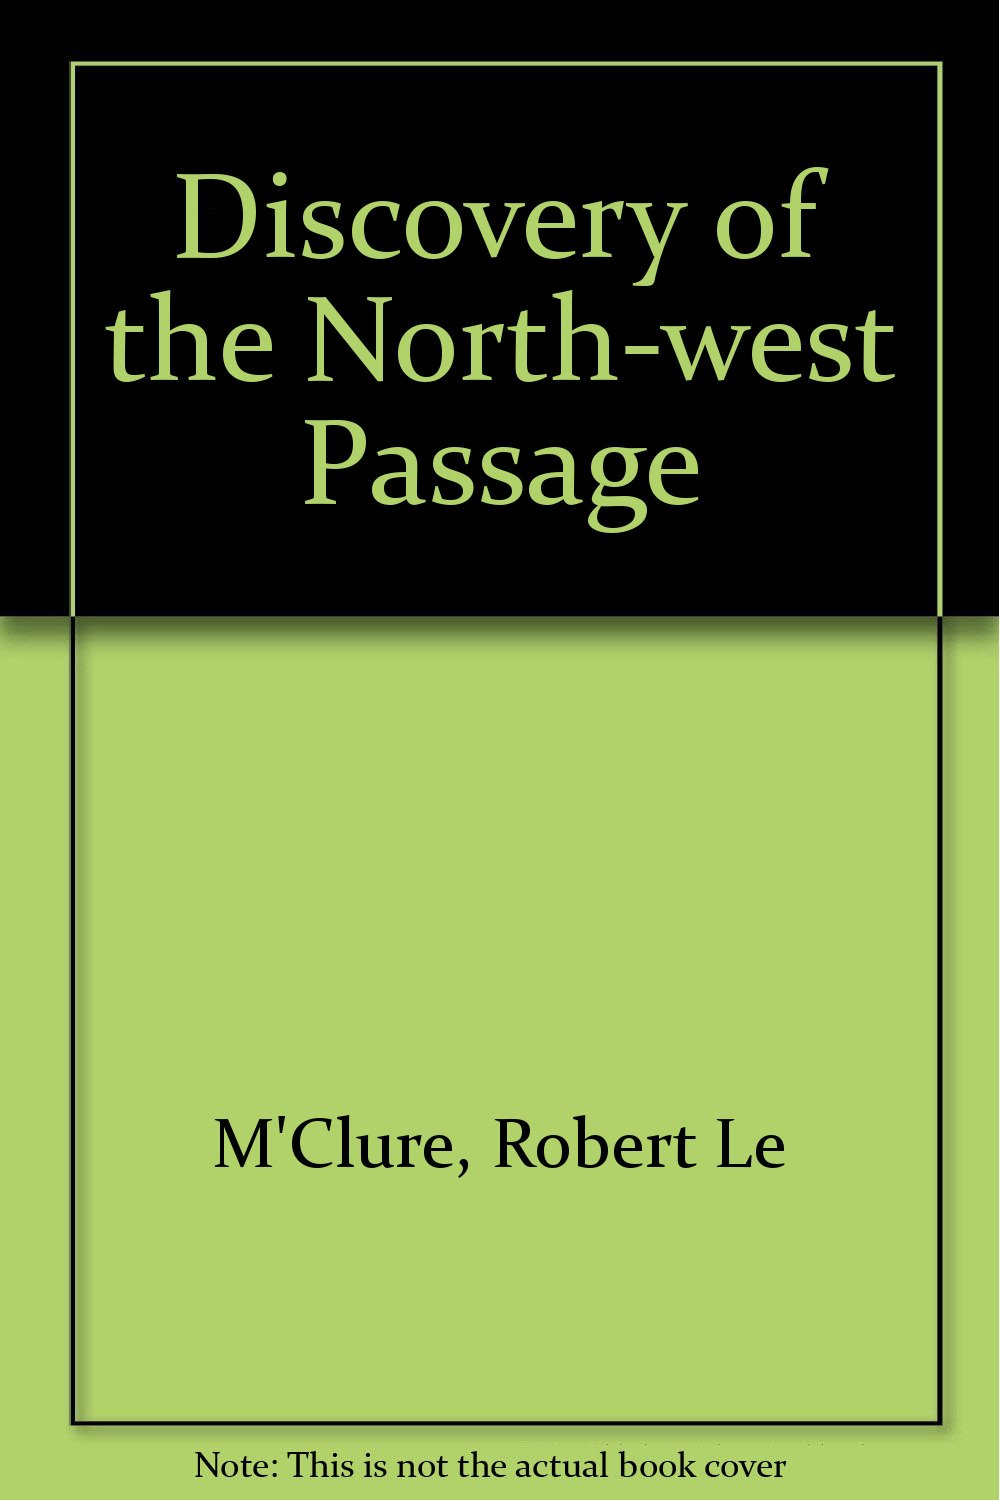 Discovery of the North-west Passage